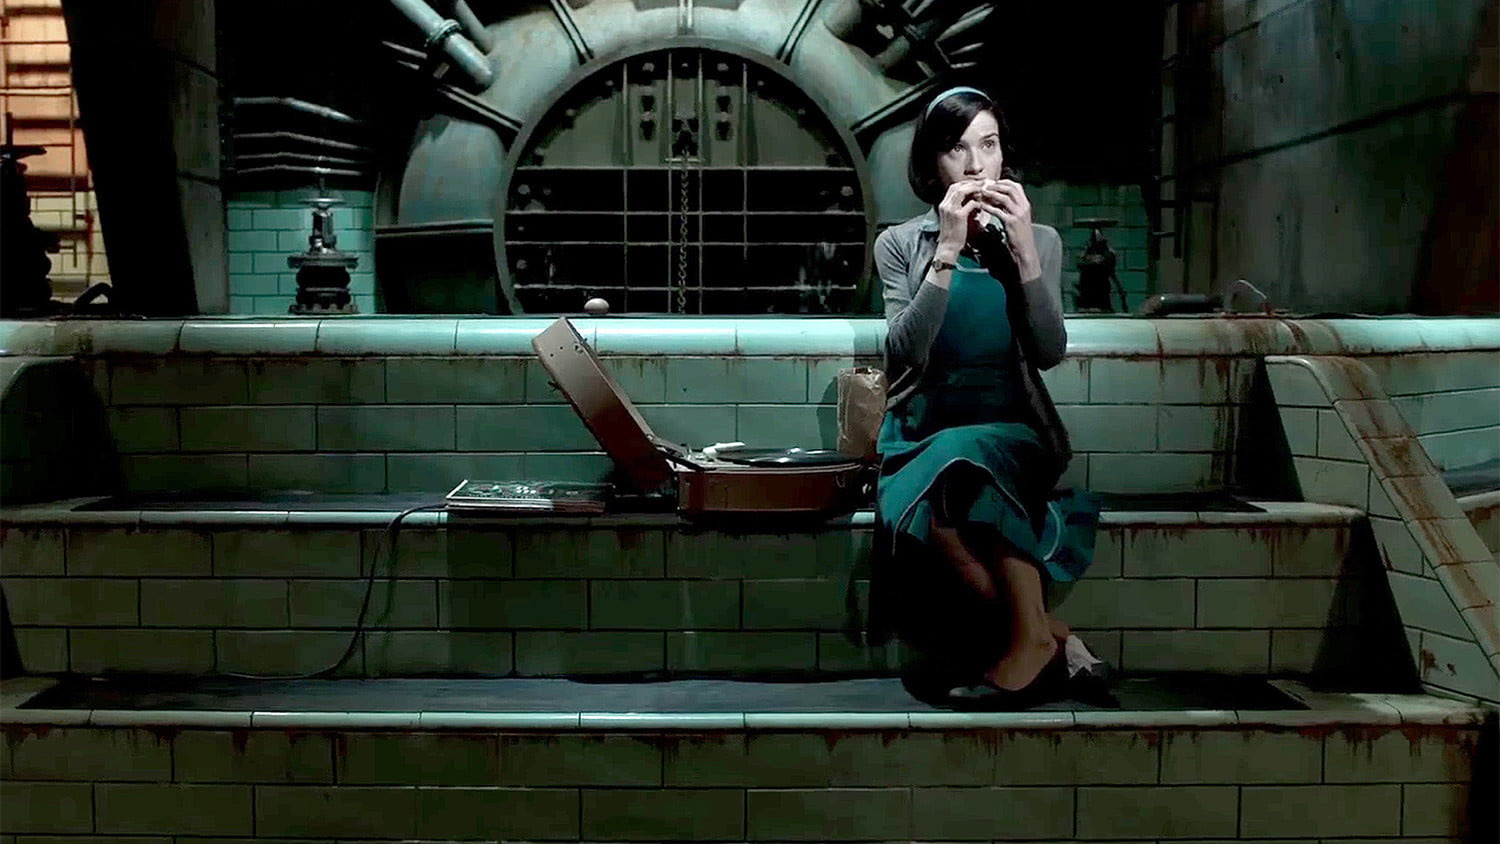 Shape of water / Sally Hawkins, Foto: Twentieth Century Fox of Germany GmbH